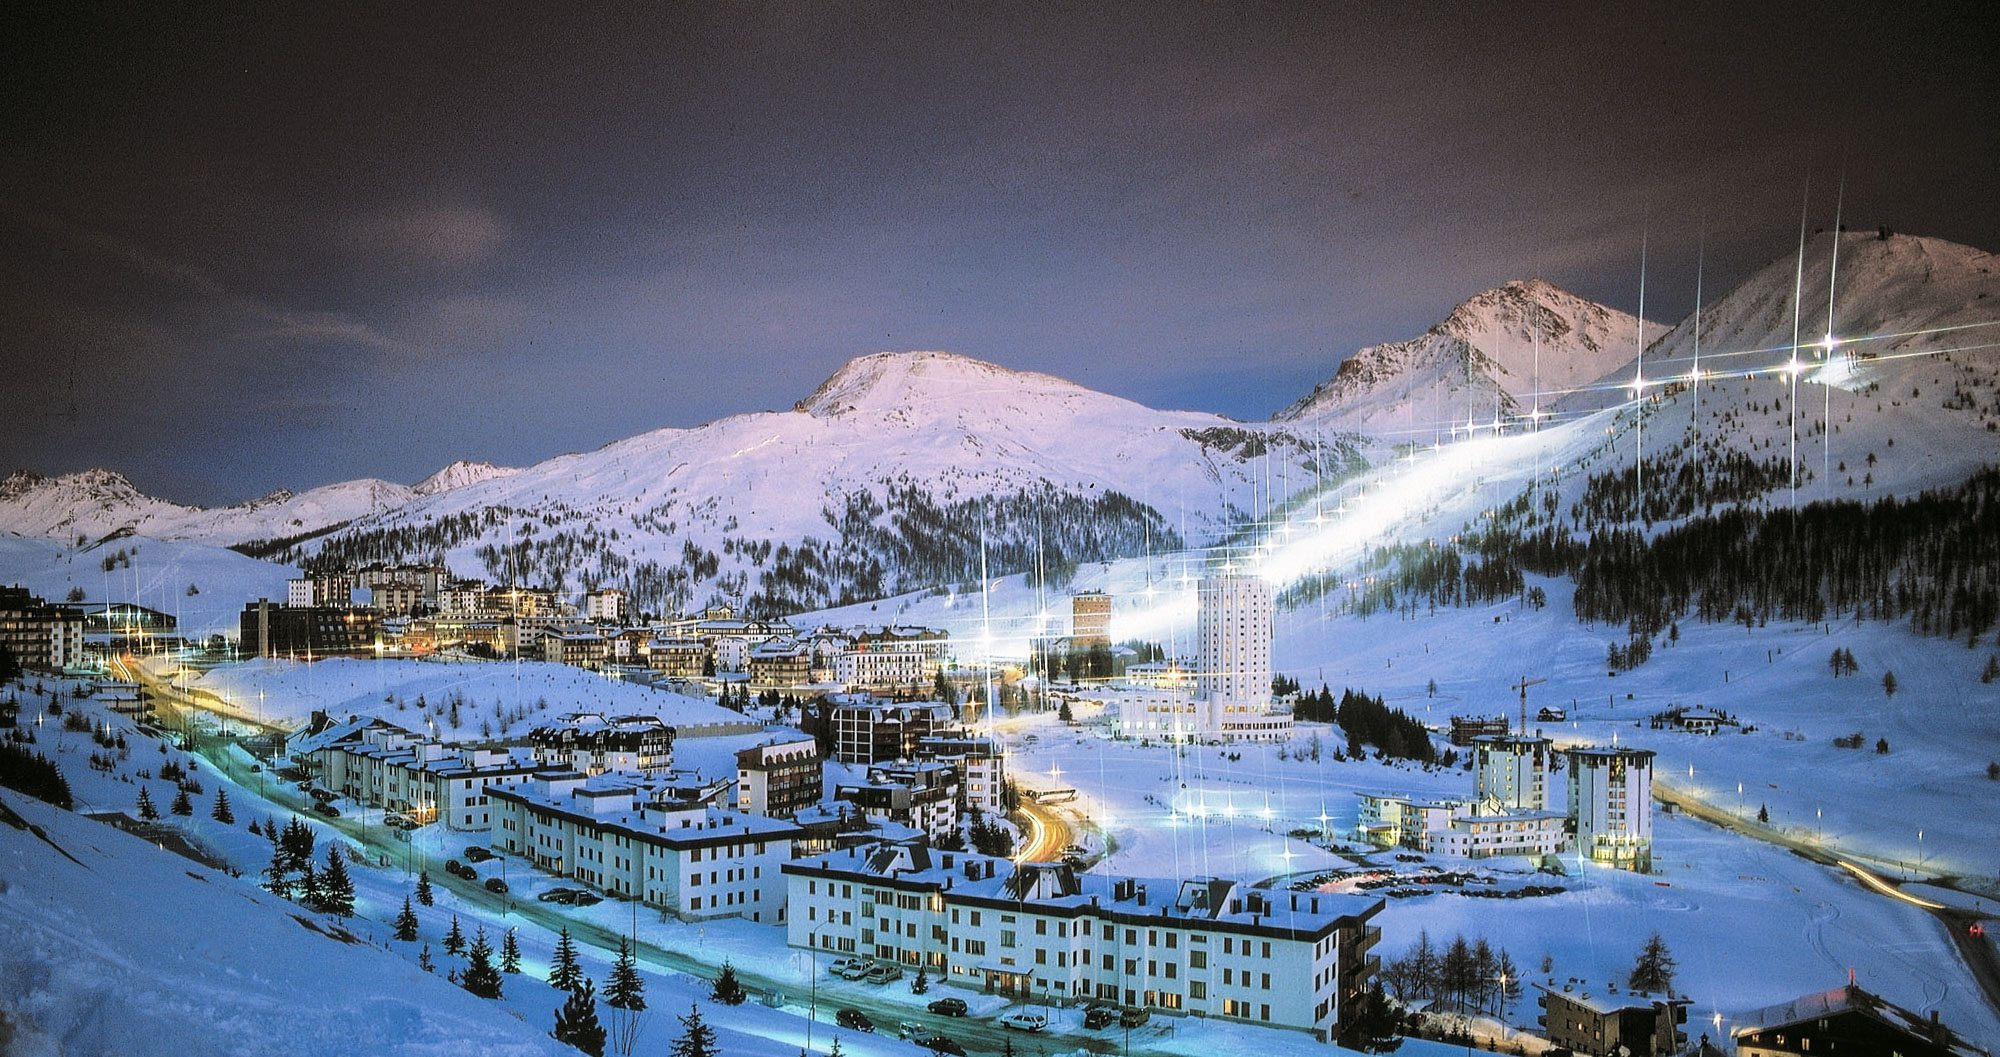 Italy ski resort at night